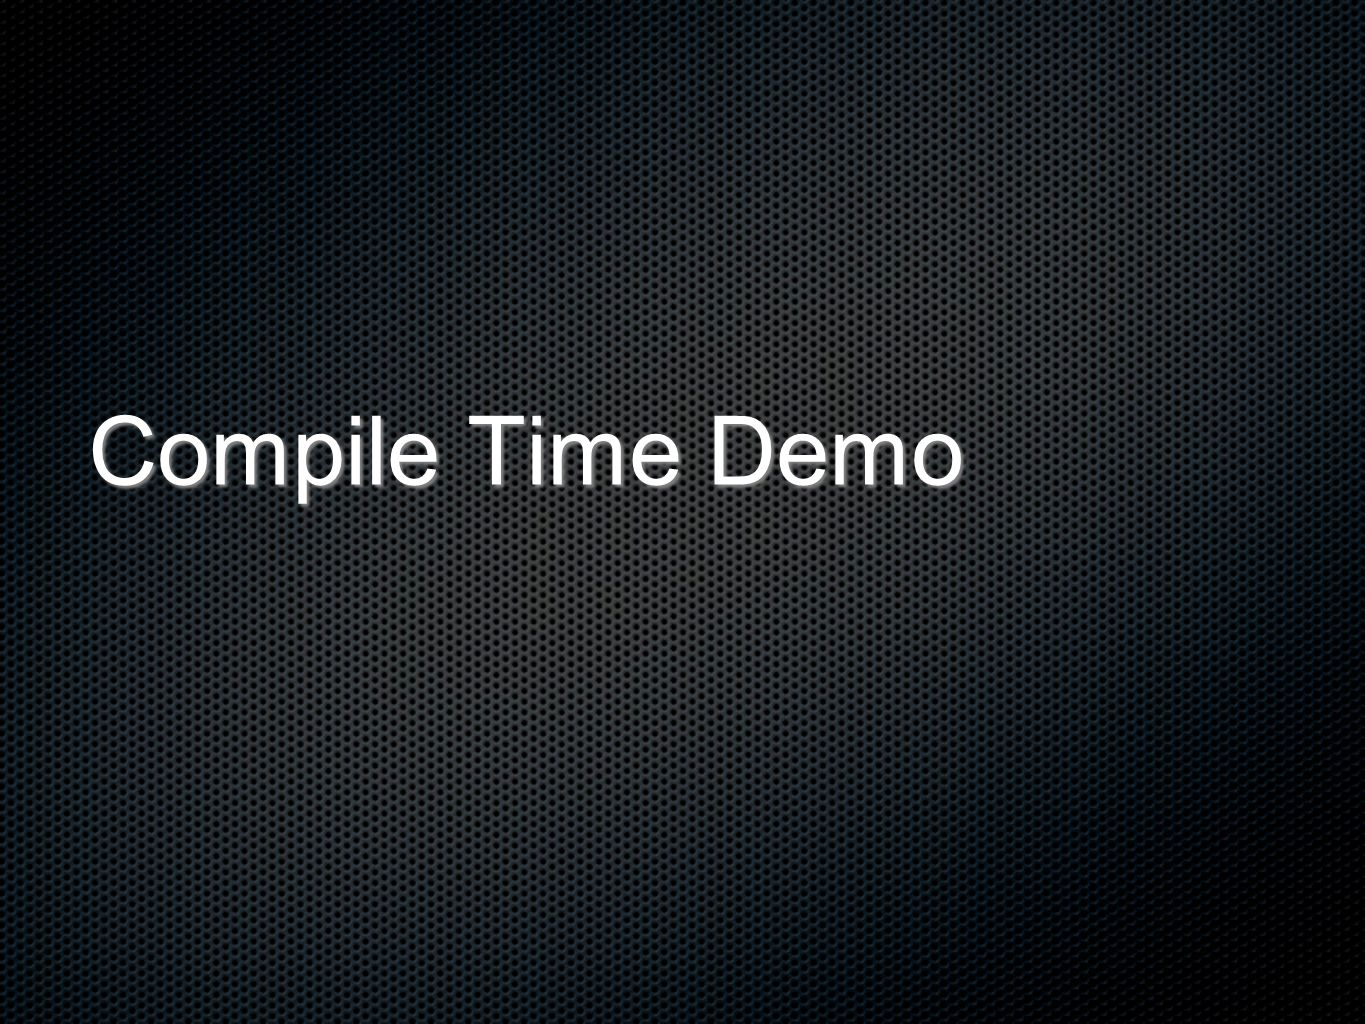 Compile Time Demo